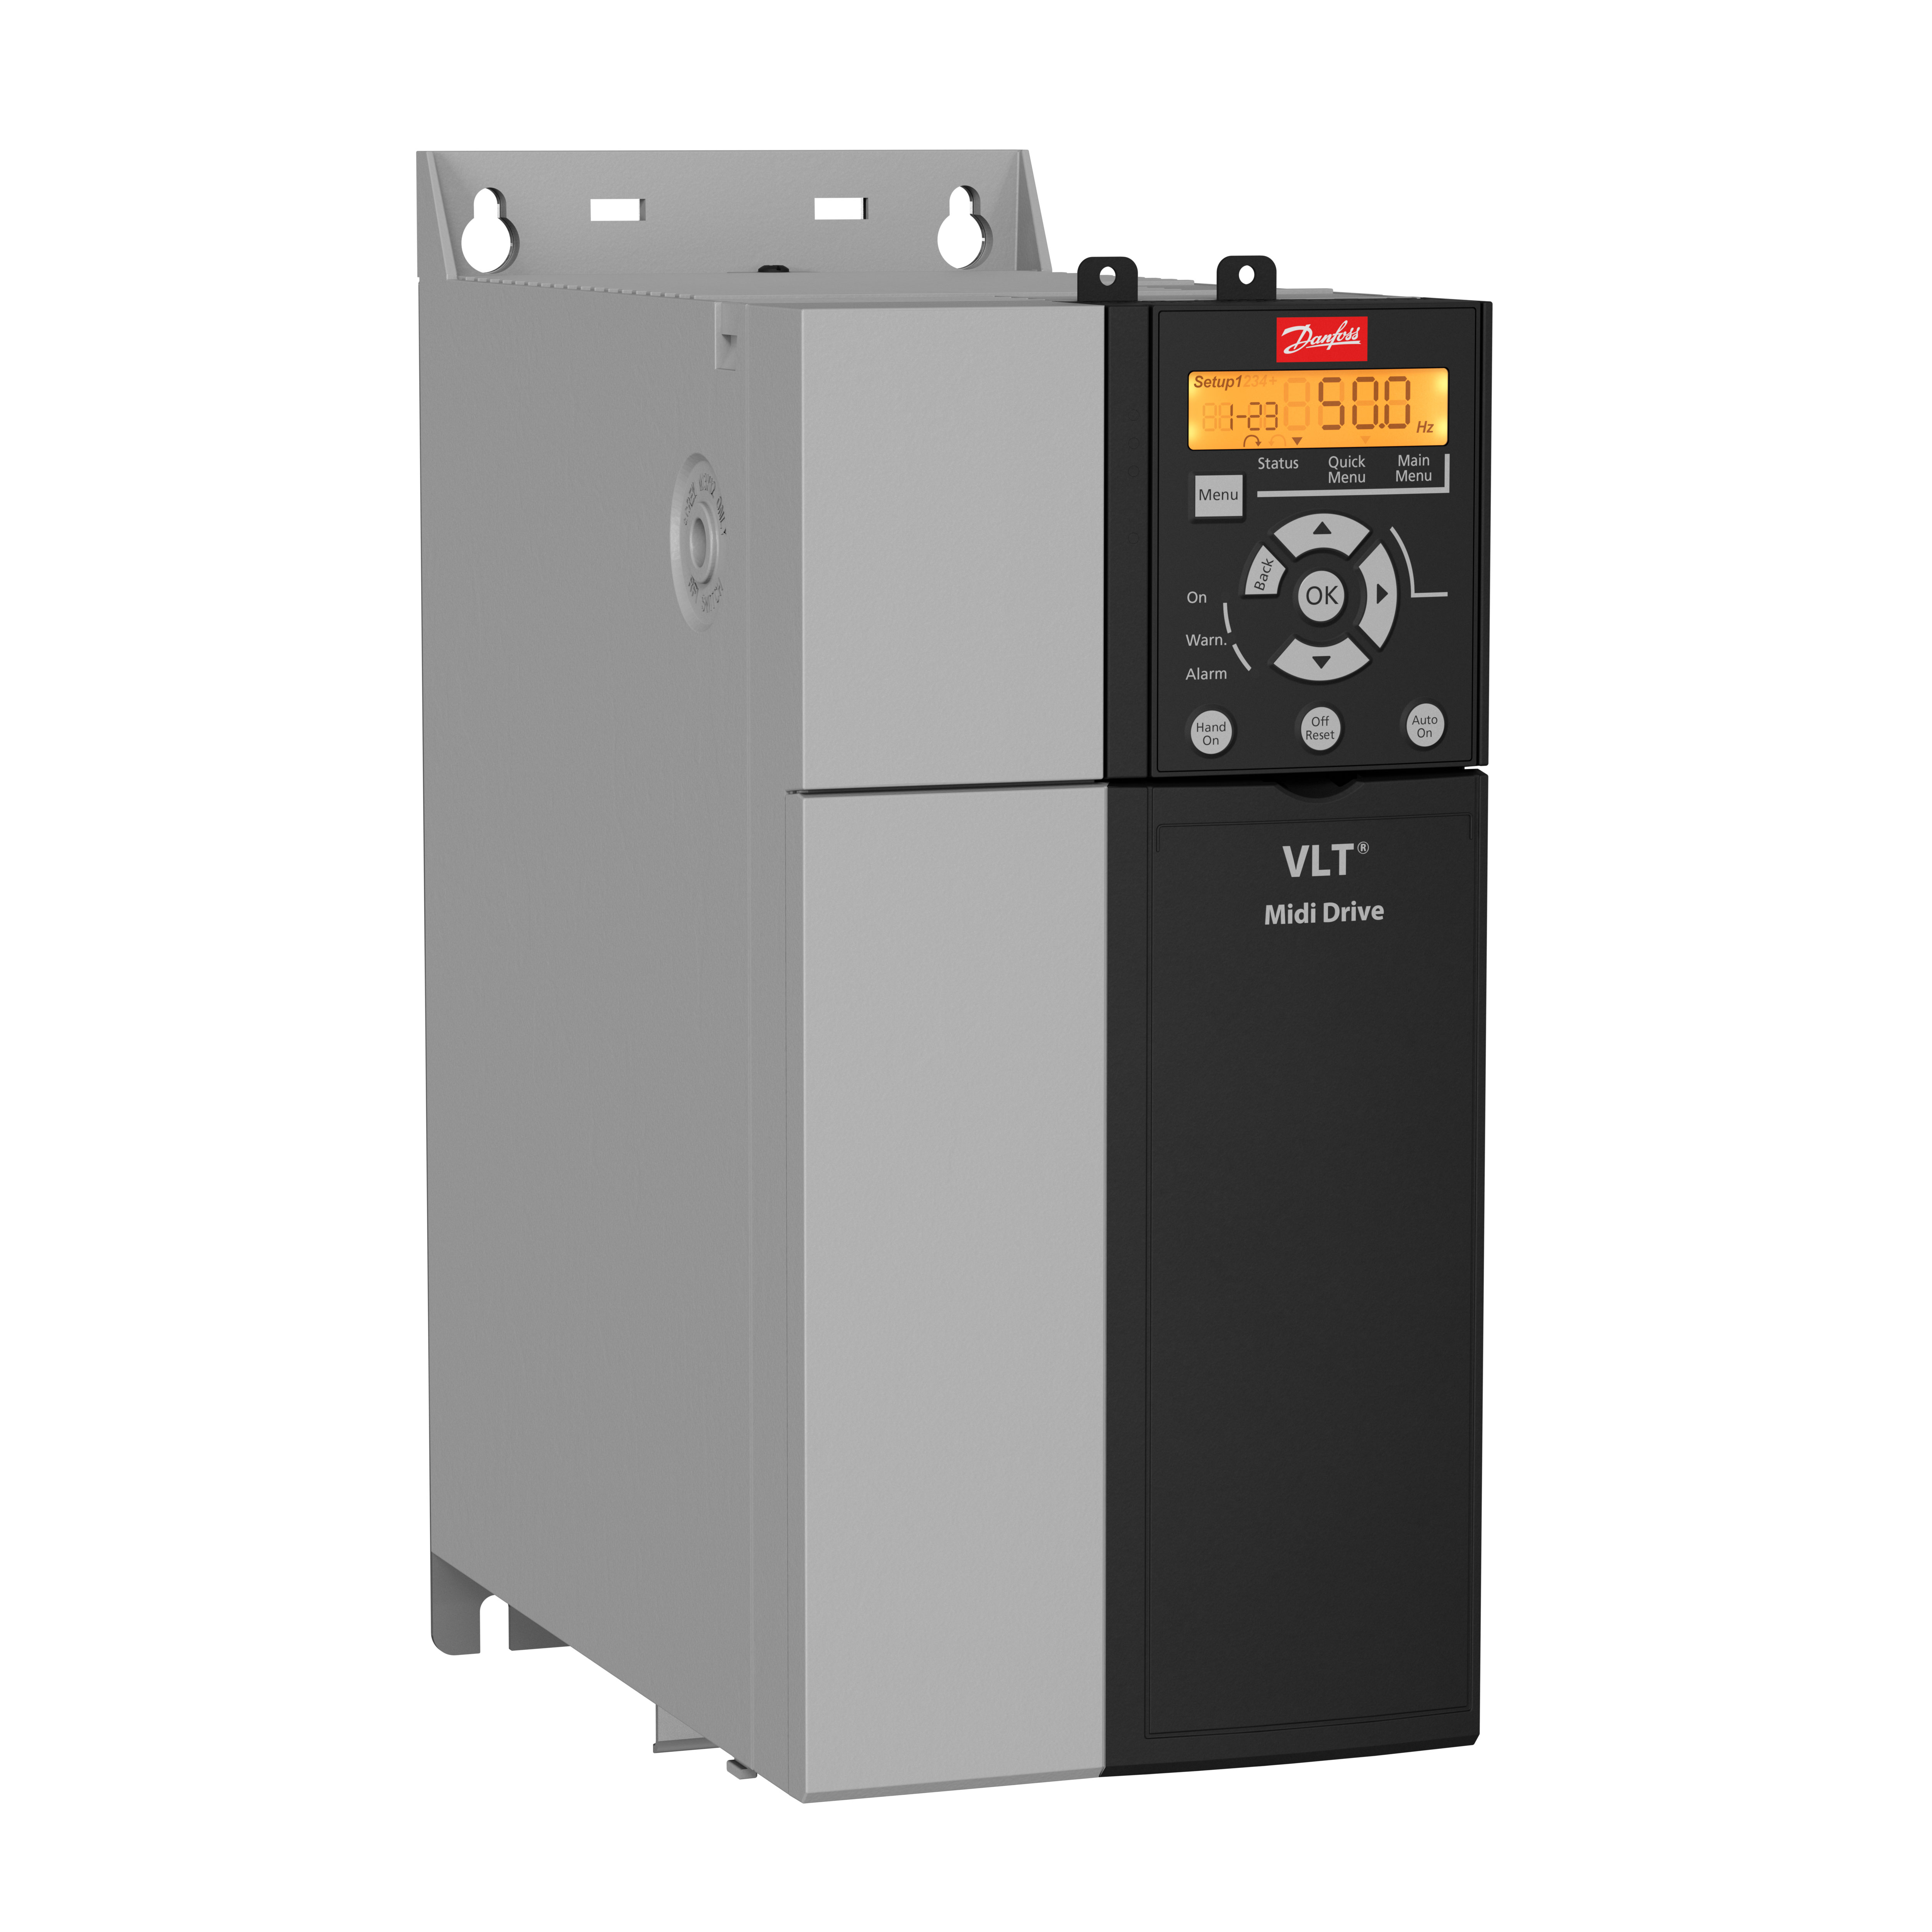 134U3010 Danfoss VLT Midi Drive FC 280 1.5 kW / 2.0 HP Three phase 380-480 VAC IP20